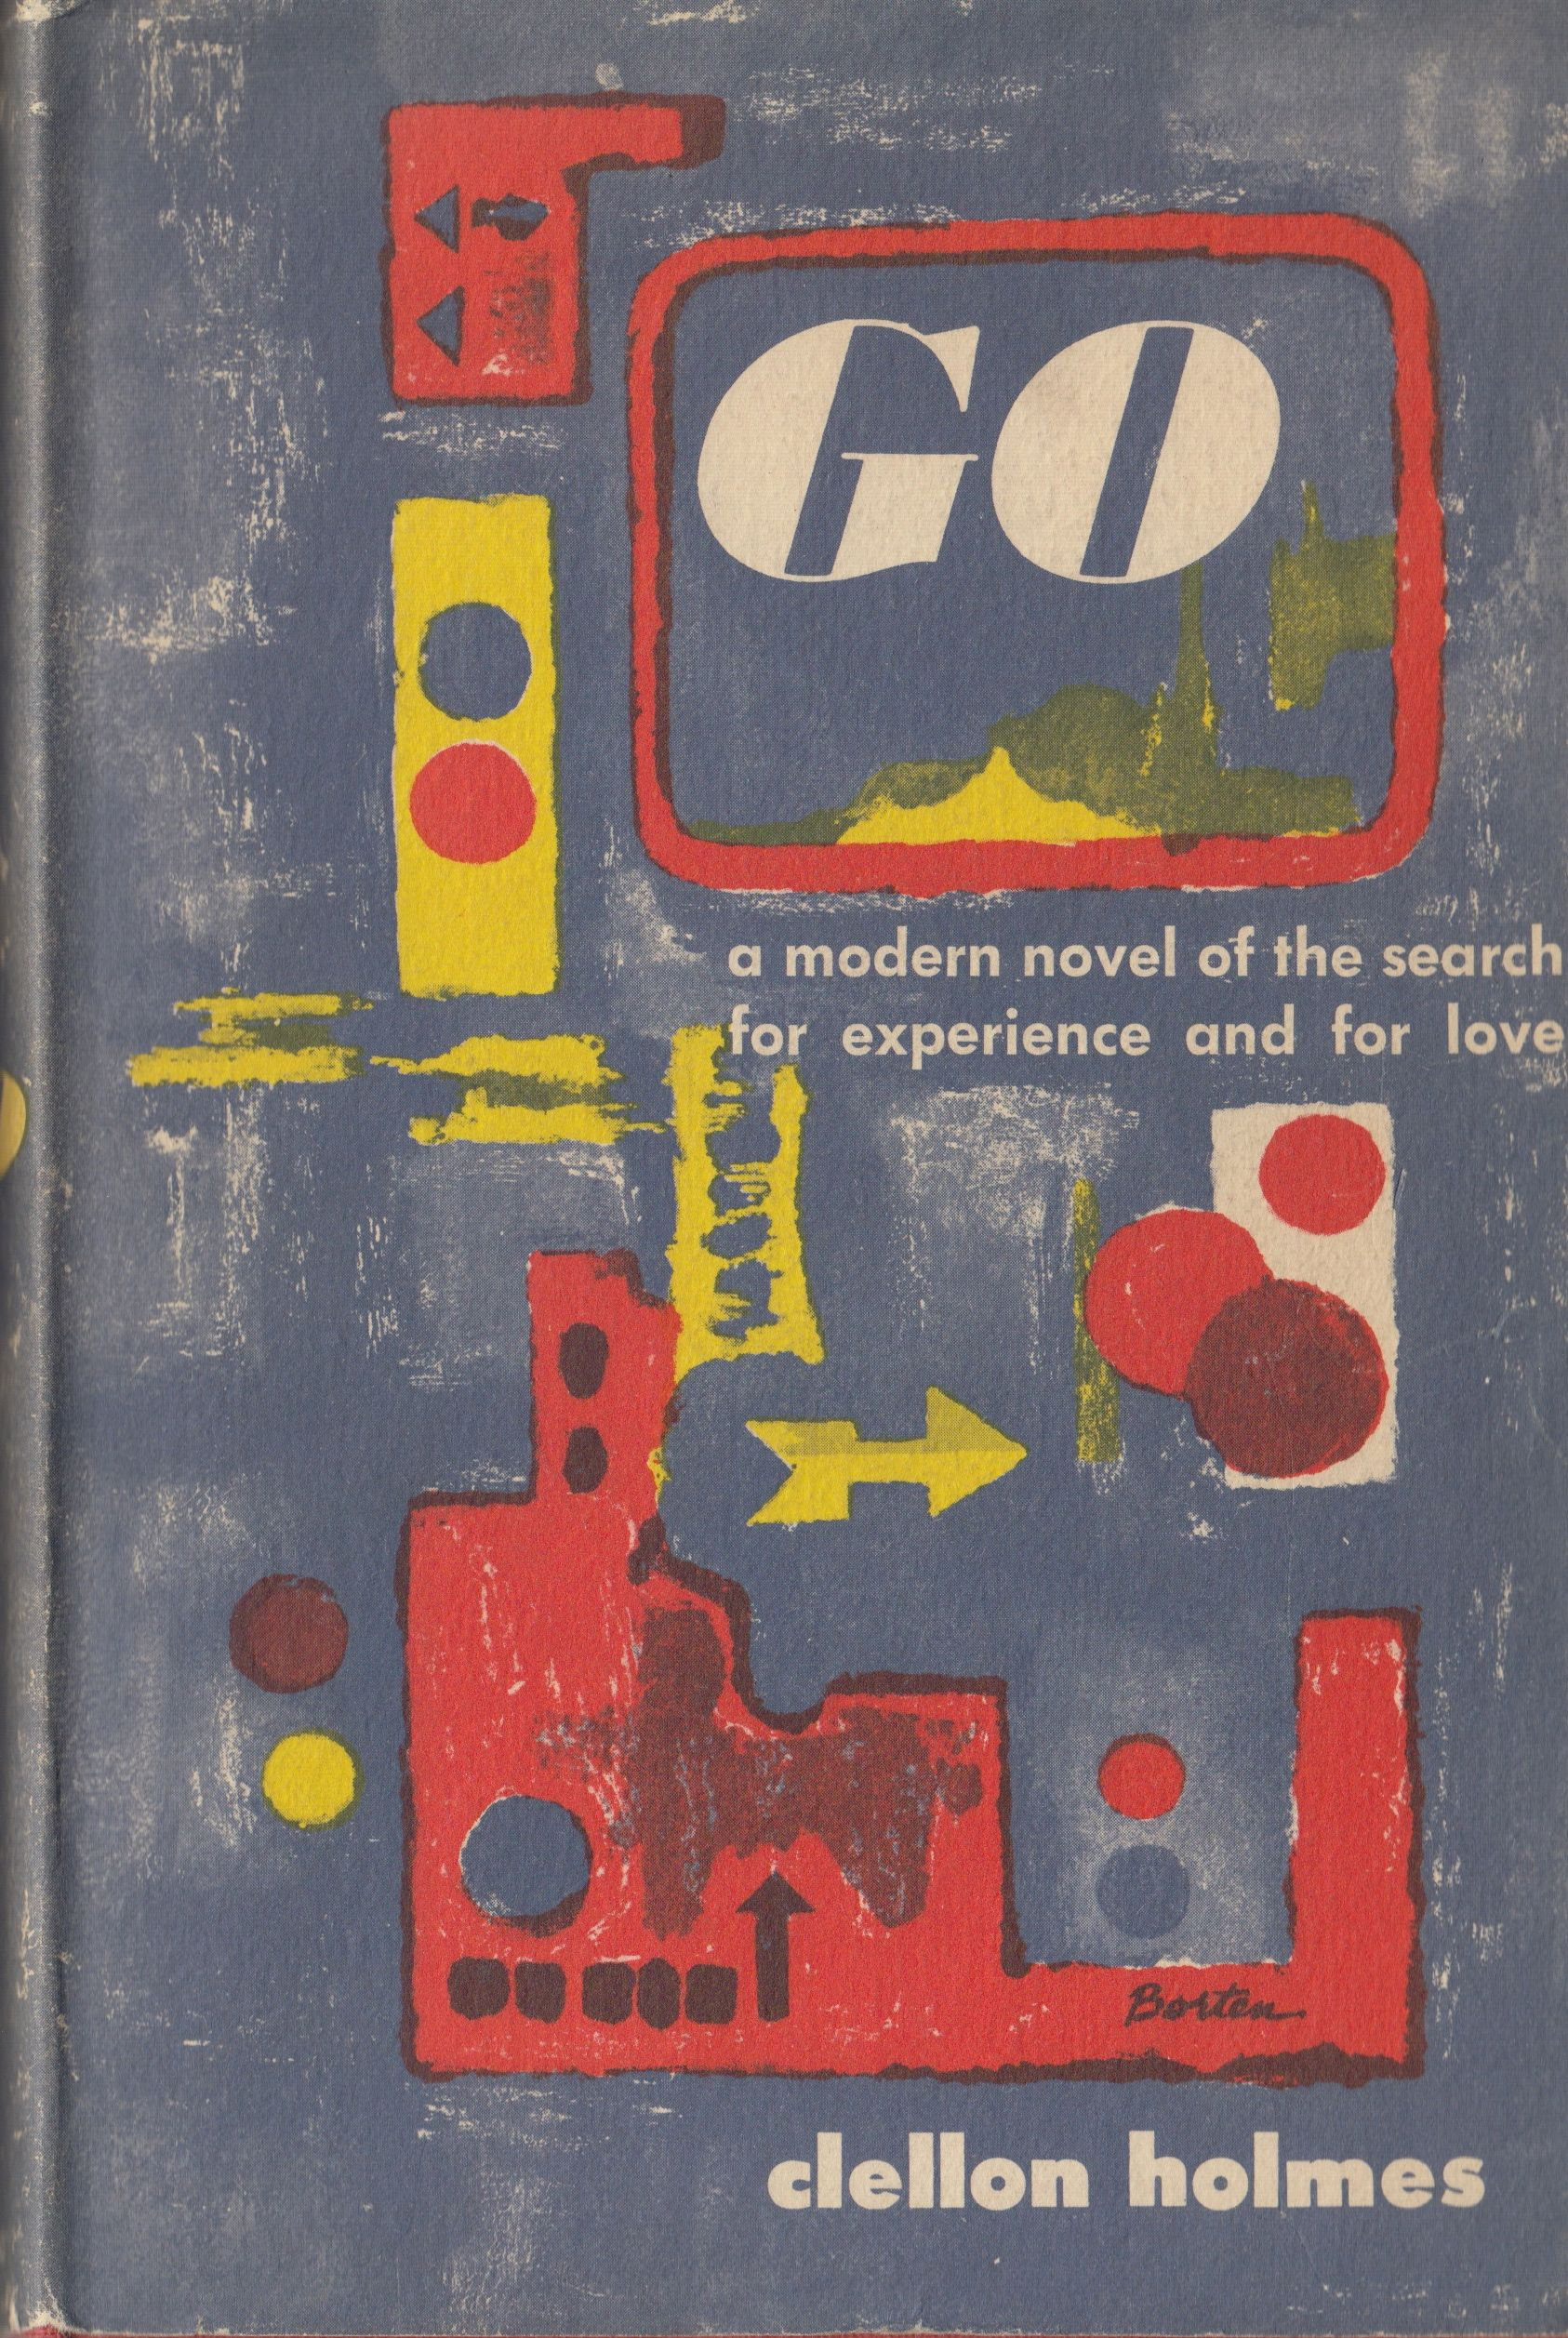 First edition of Go: A Modern Novel of the Search and Experience for Love by (John) Clellon Holmes. (PS3558 .03594 G6 .1952. Clifton Waller Barrett Library of American Literature. Image by Petrina Jackson)